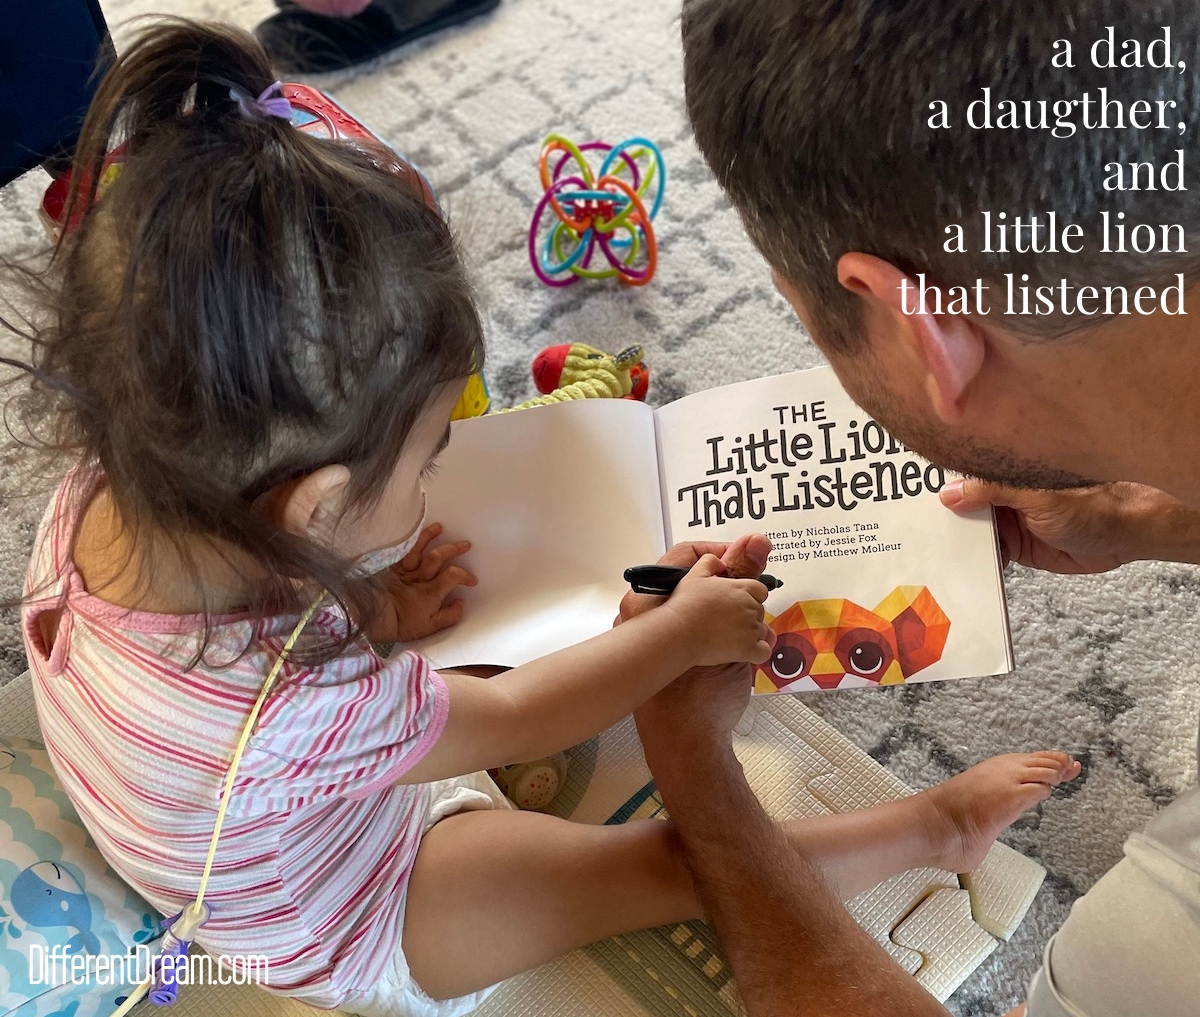 Author Nicolas Tana tells readers about the little girl behind his new children's book, The Little Lion that Listened.